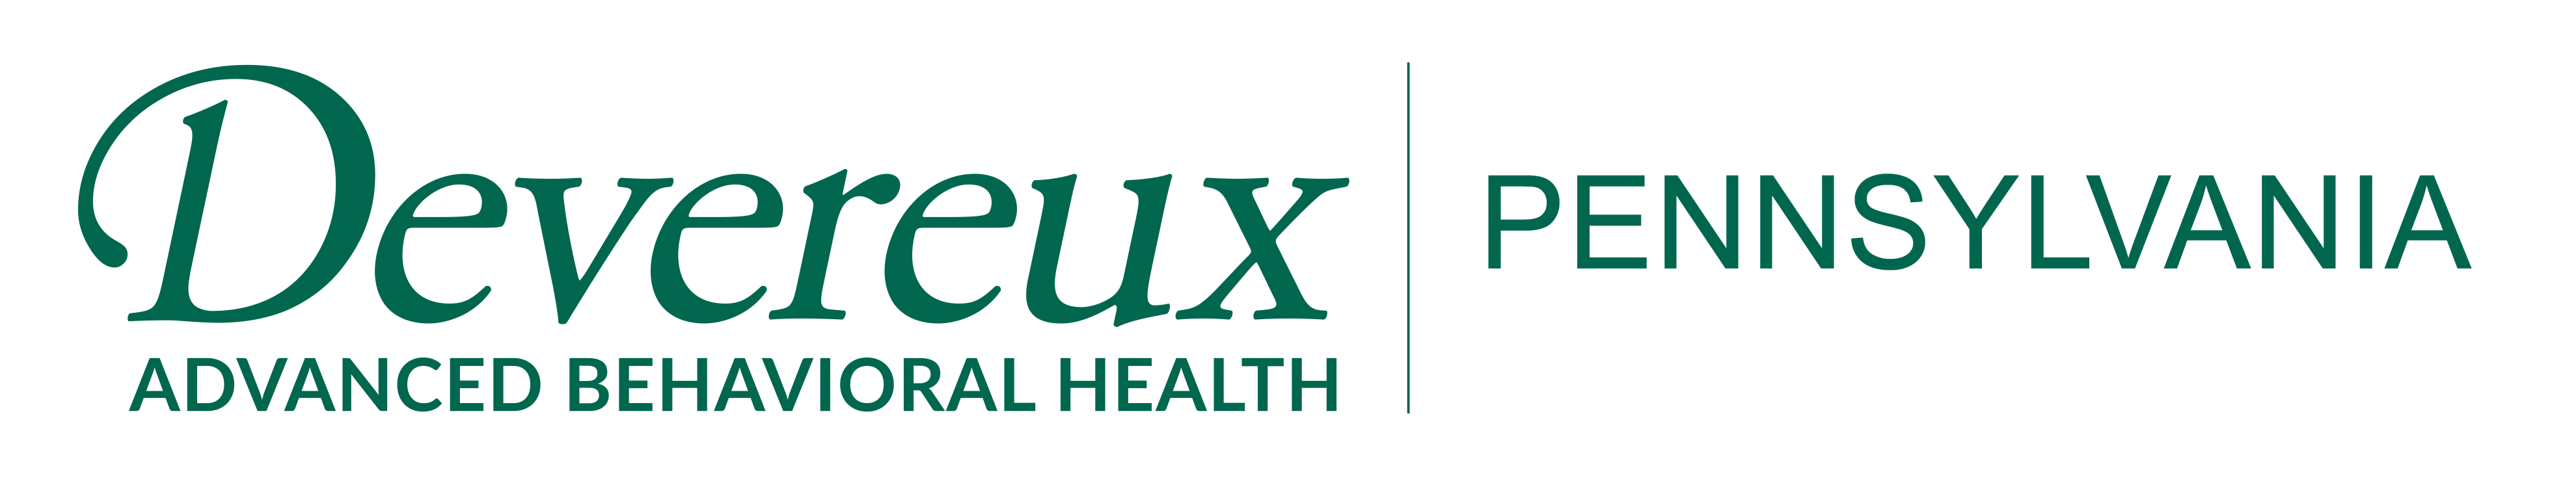 Final Devereux Advanced Behavioral Health Logo